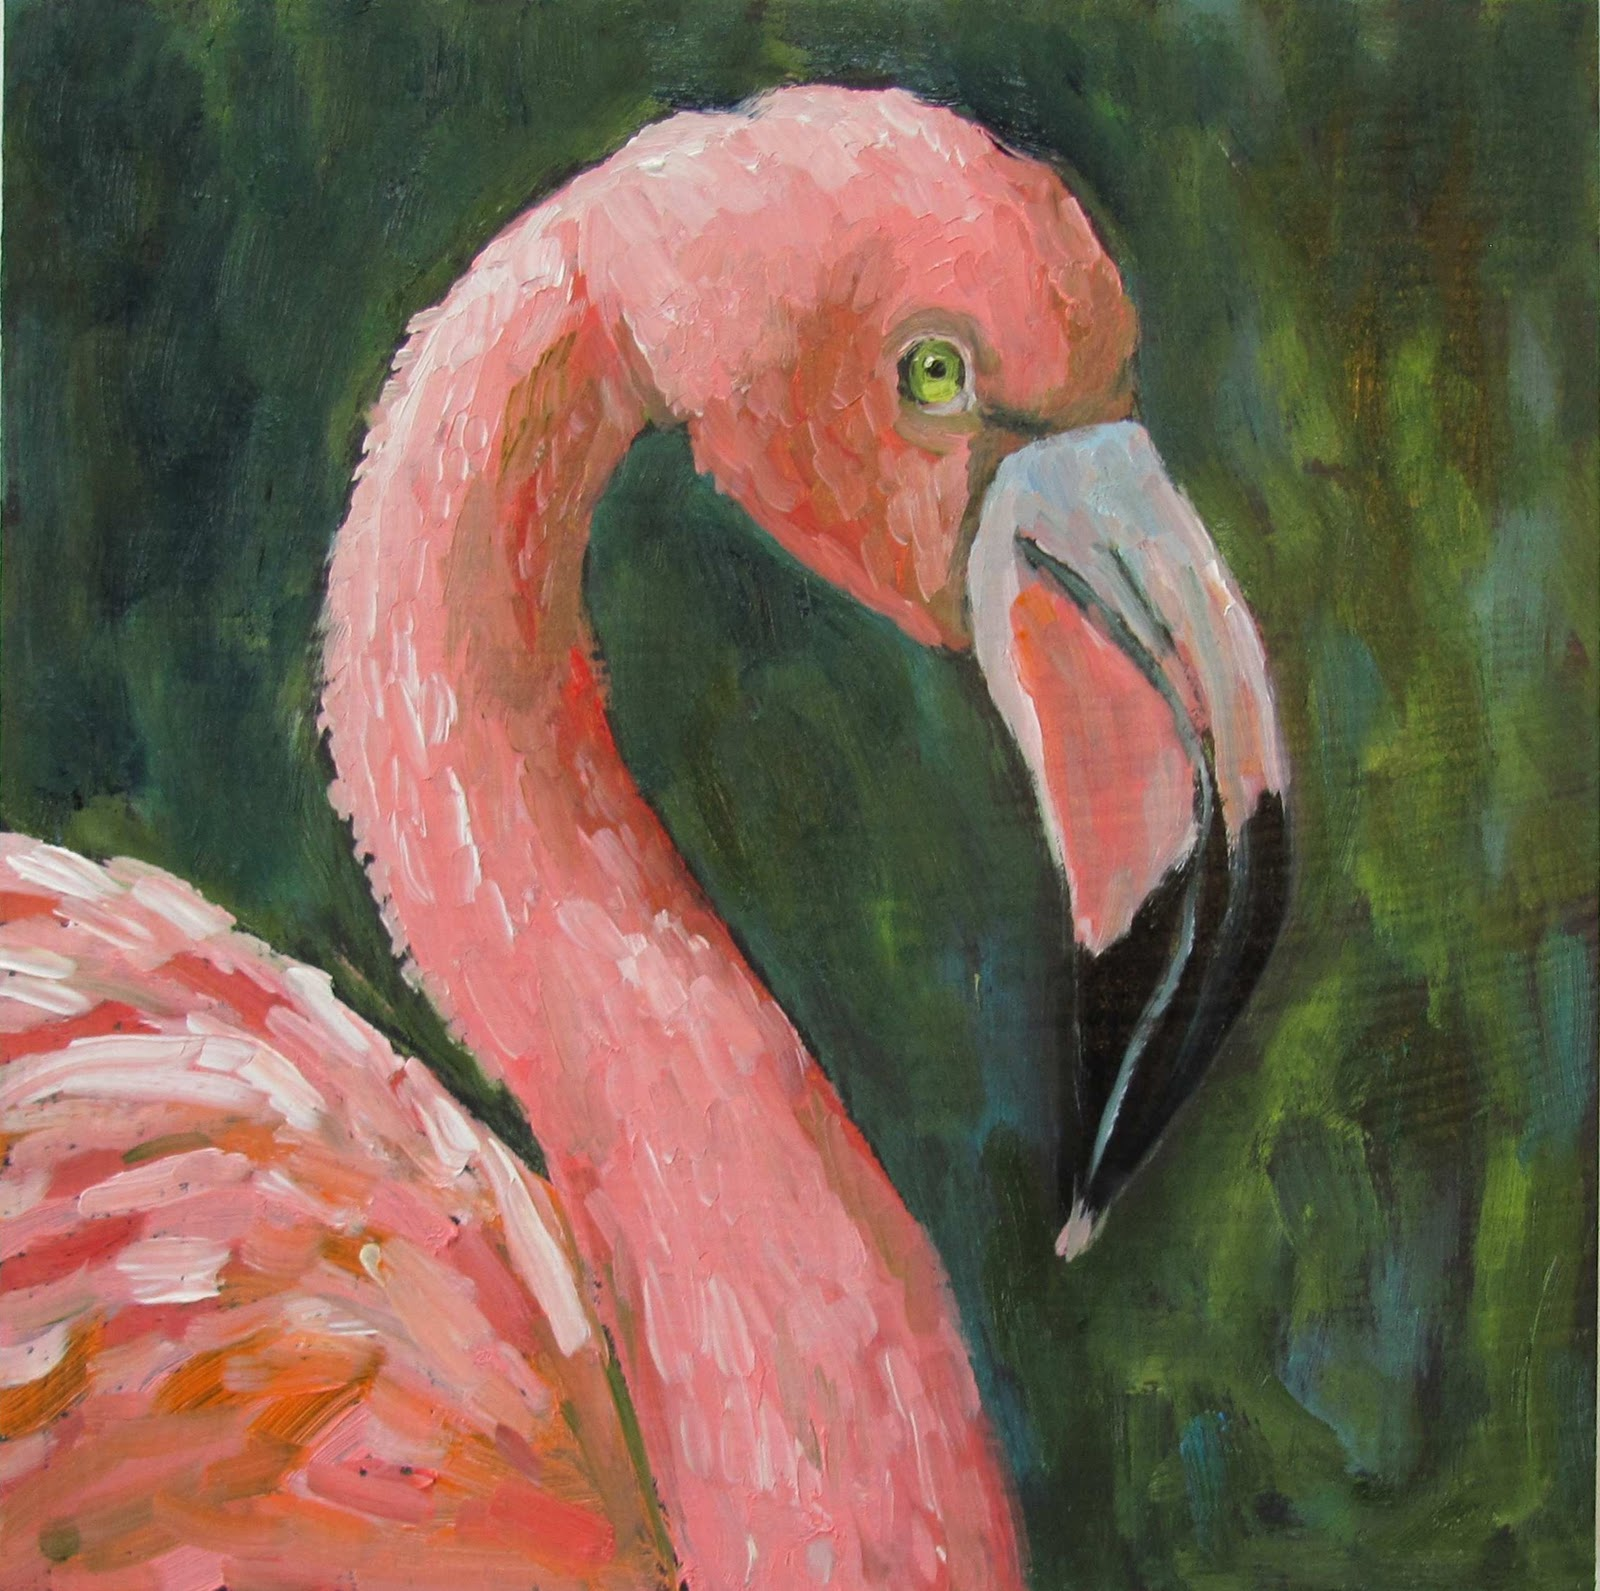 This Flamingo Painting Is Sold However If You Are Interested In Flamingos I Can Paint Others